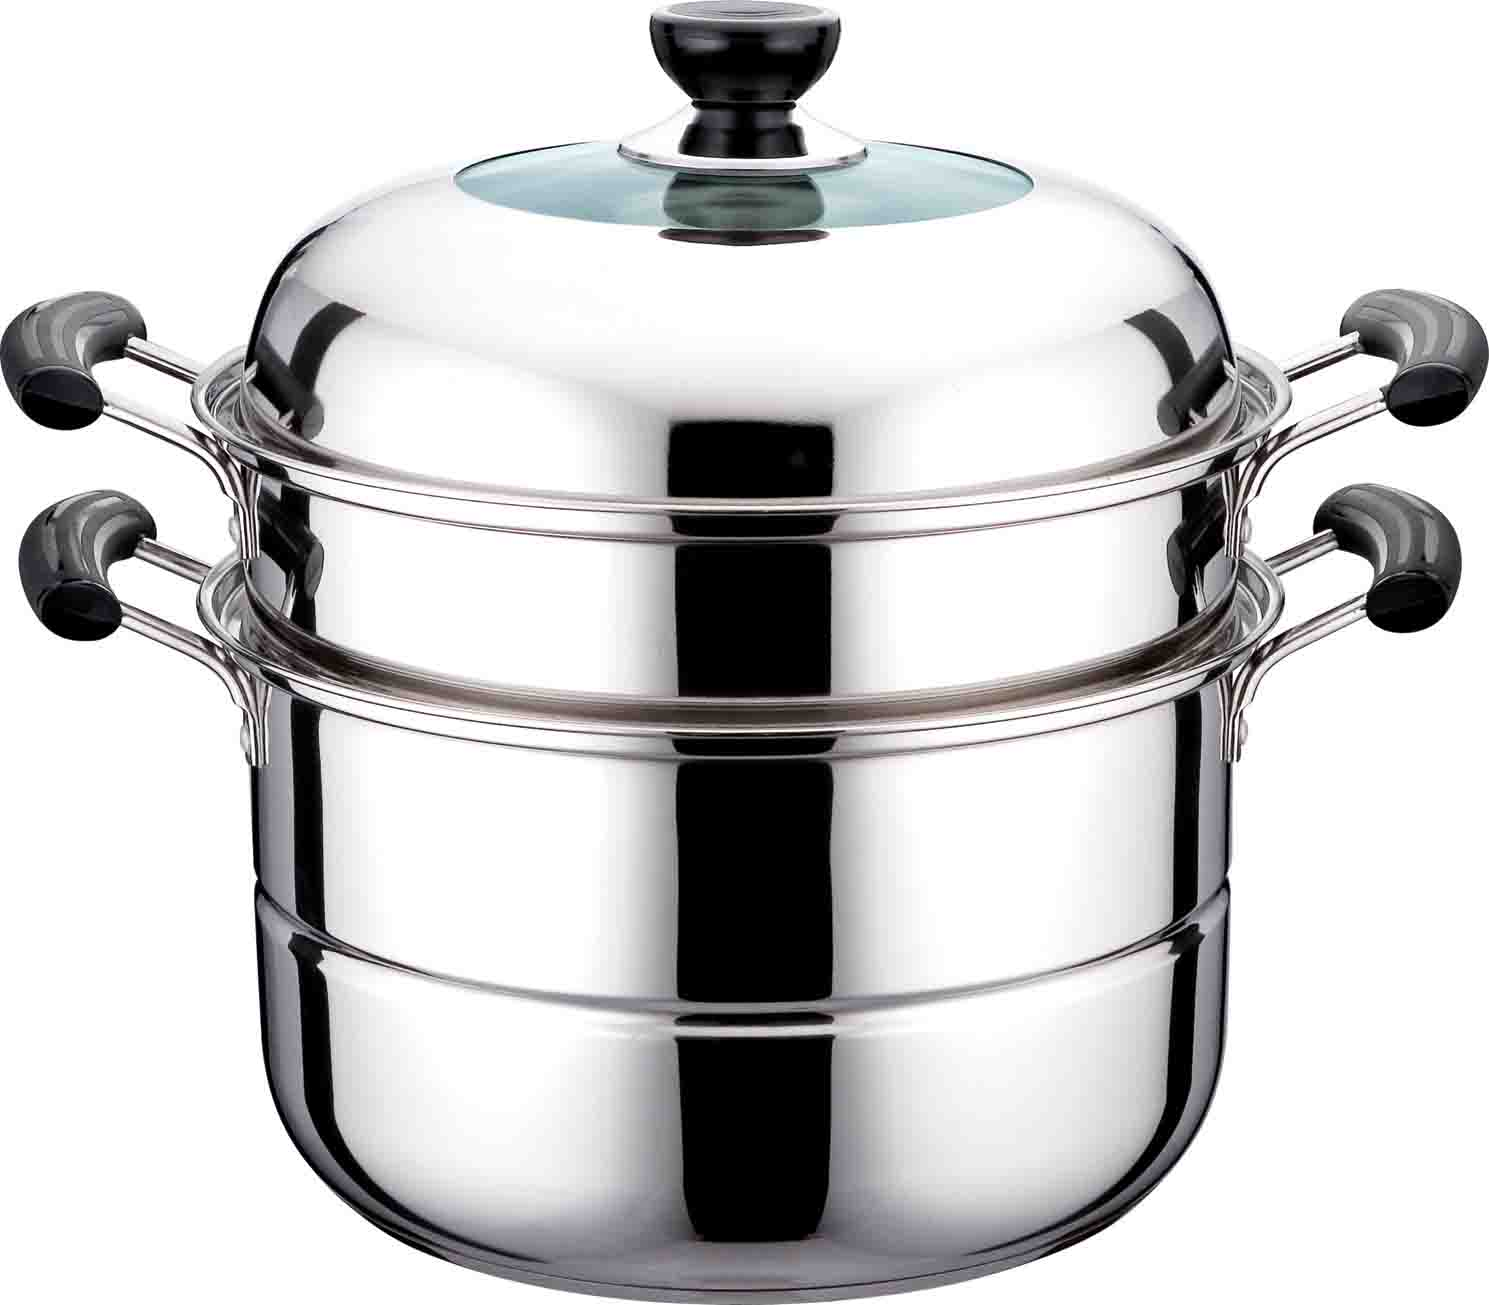 Cooking Pot Steamer ~ Ck food cooking